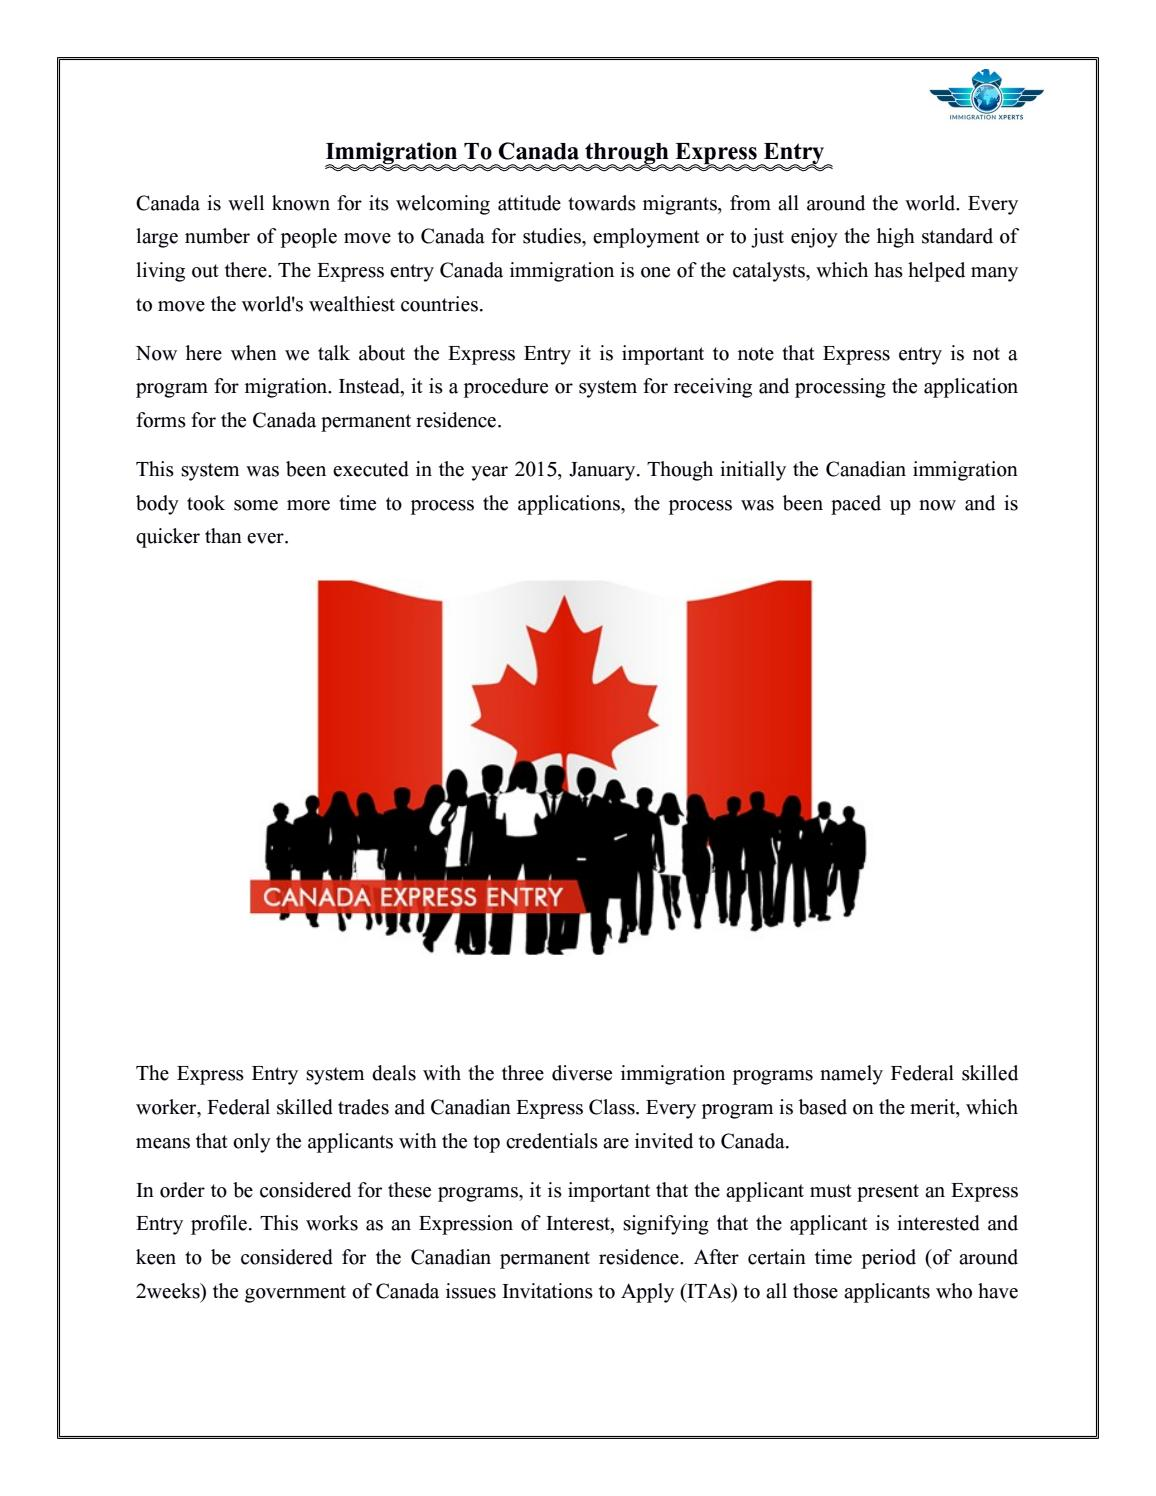 how to get immigration for canada